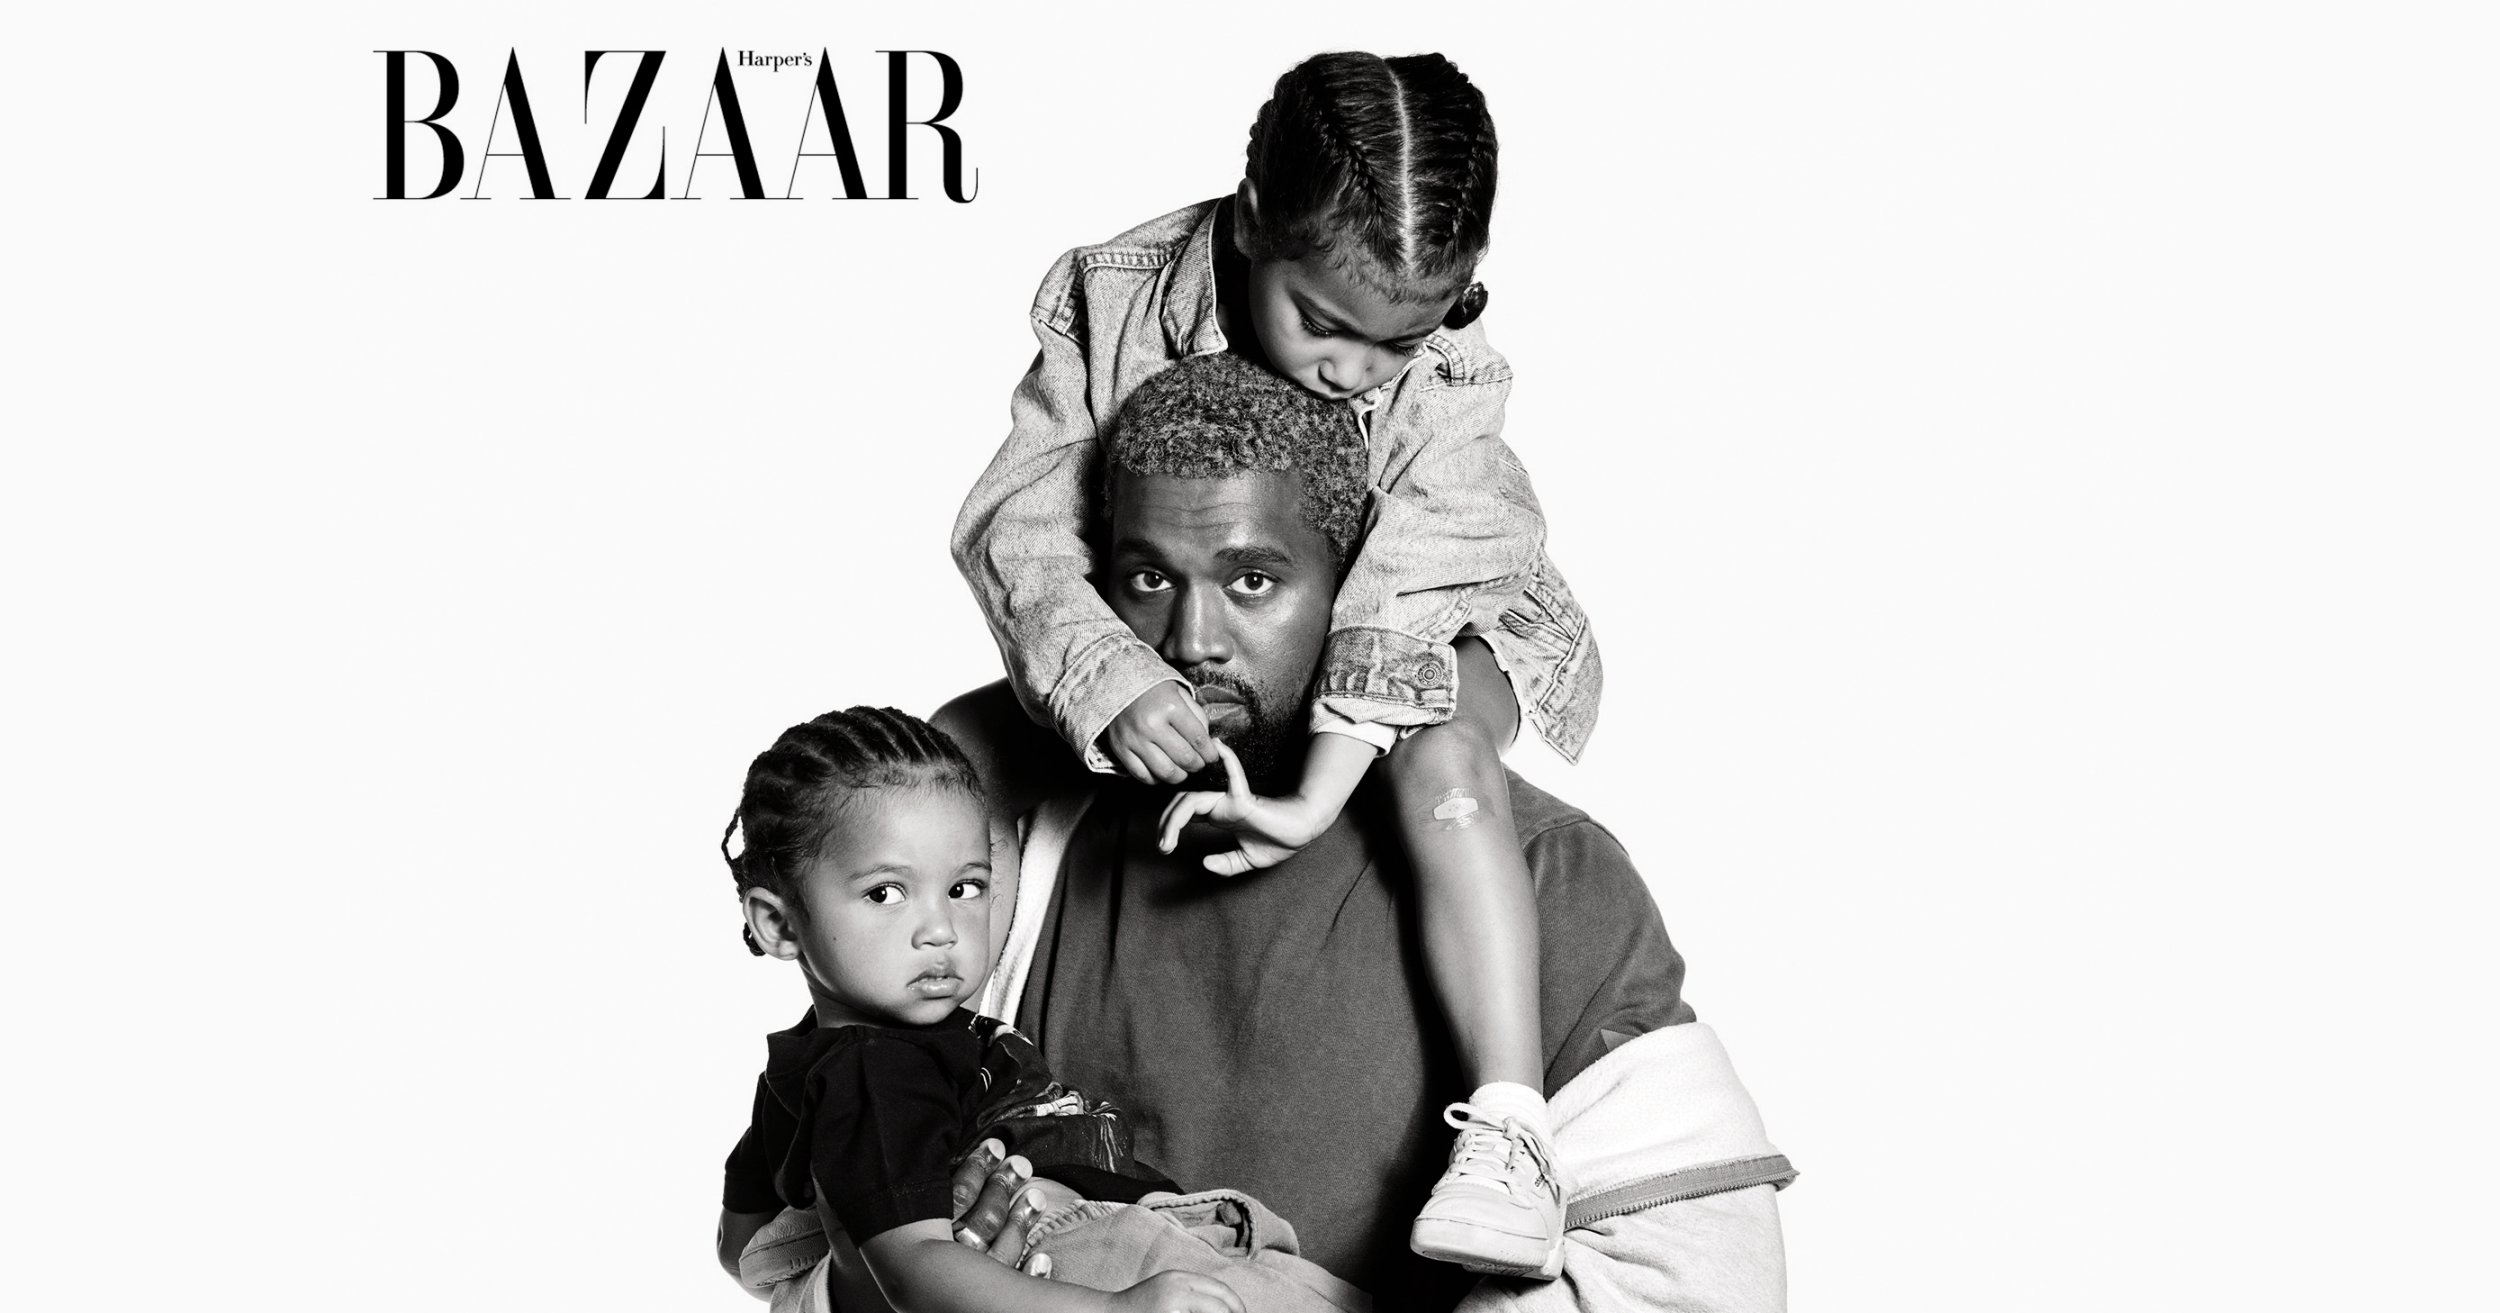 Kanye West's son Saint, 2, does adorable first magazine cover with dad and North